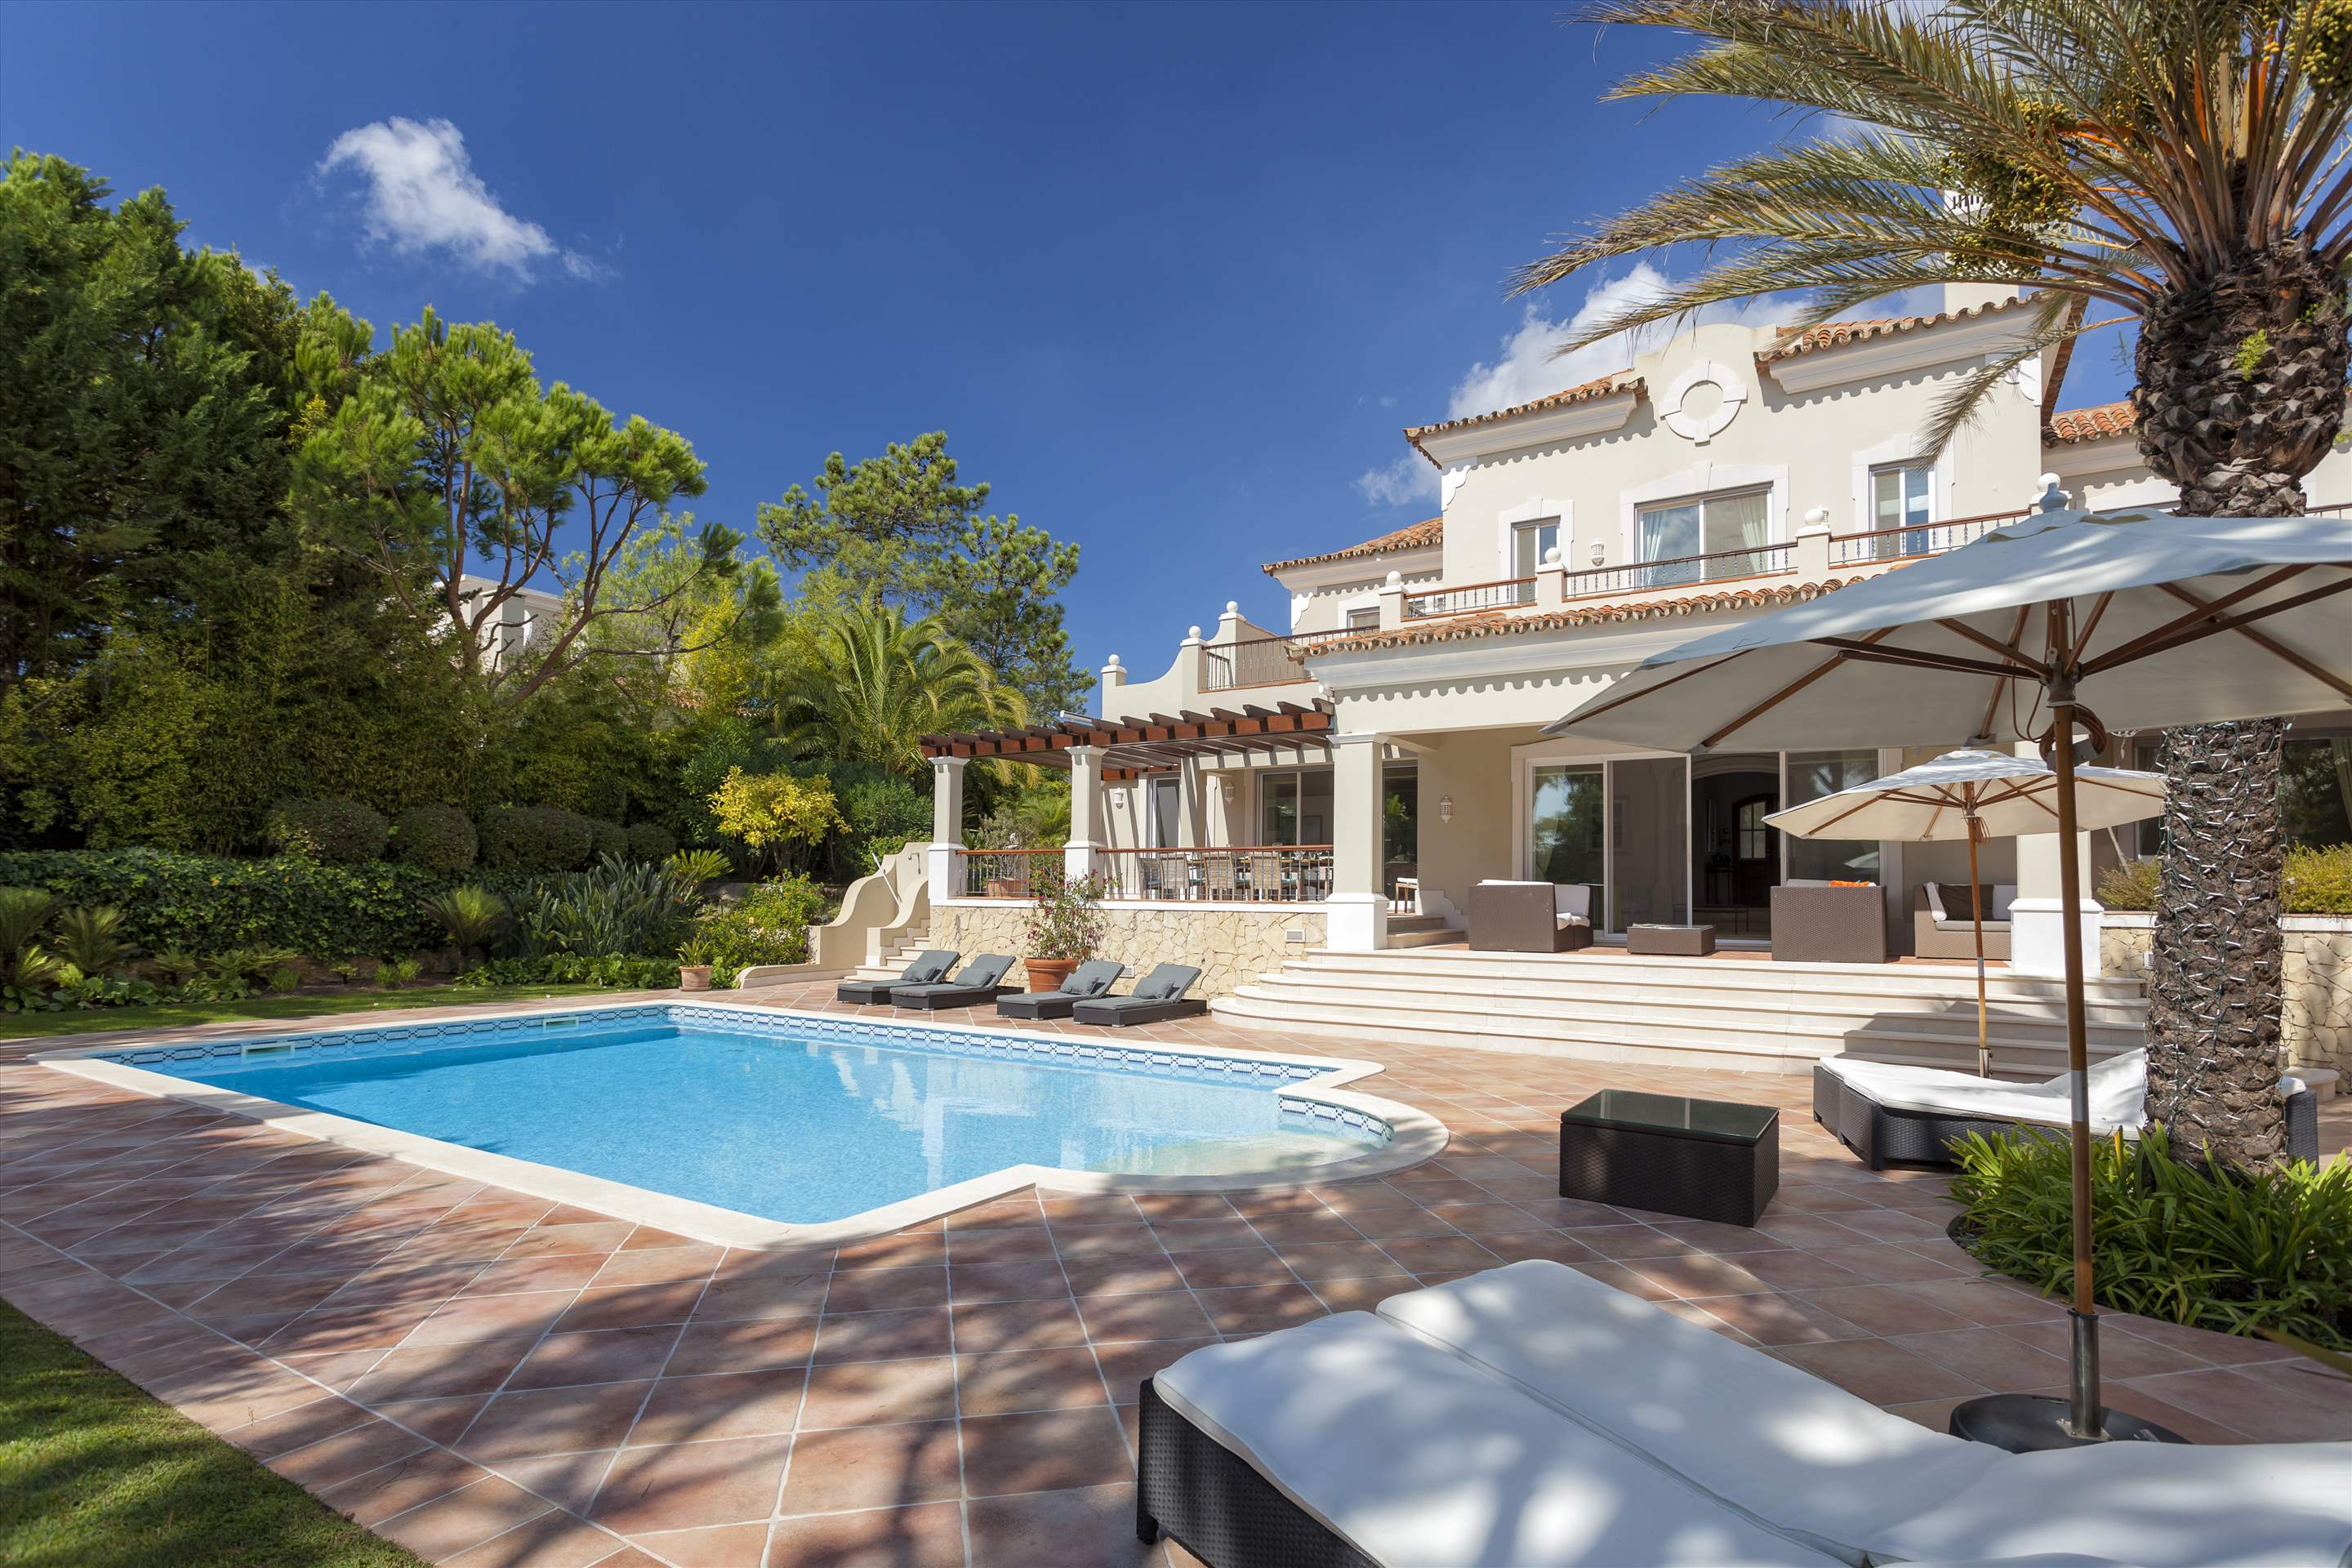 Villa Campainha, 4 Bedroom Rental, 4 bedroom villa in Quinta do Lago, Algarve Photo #12